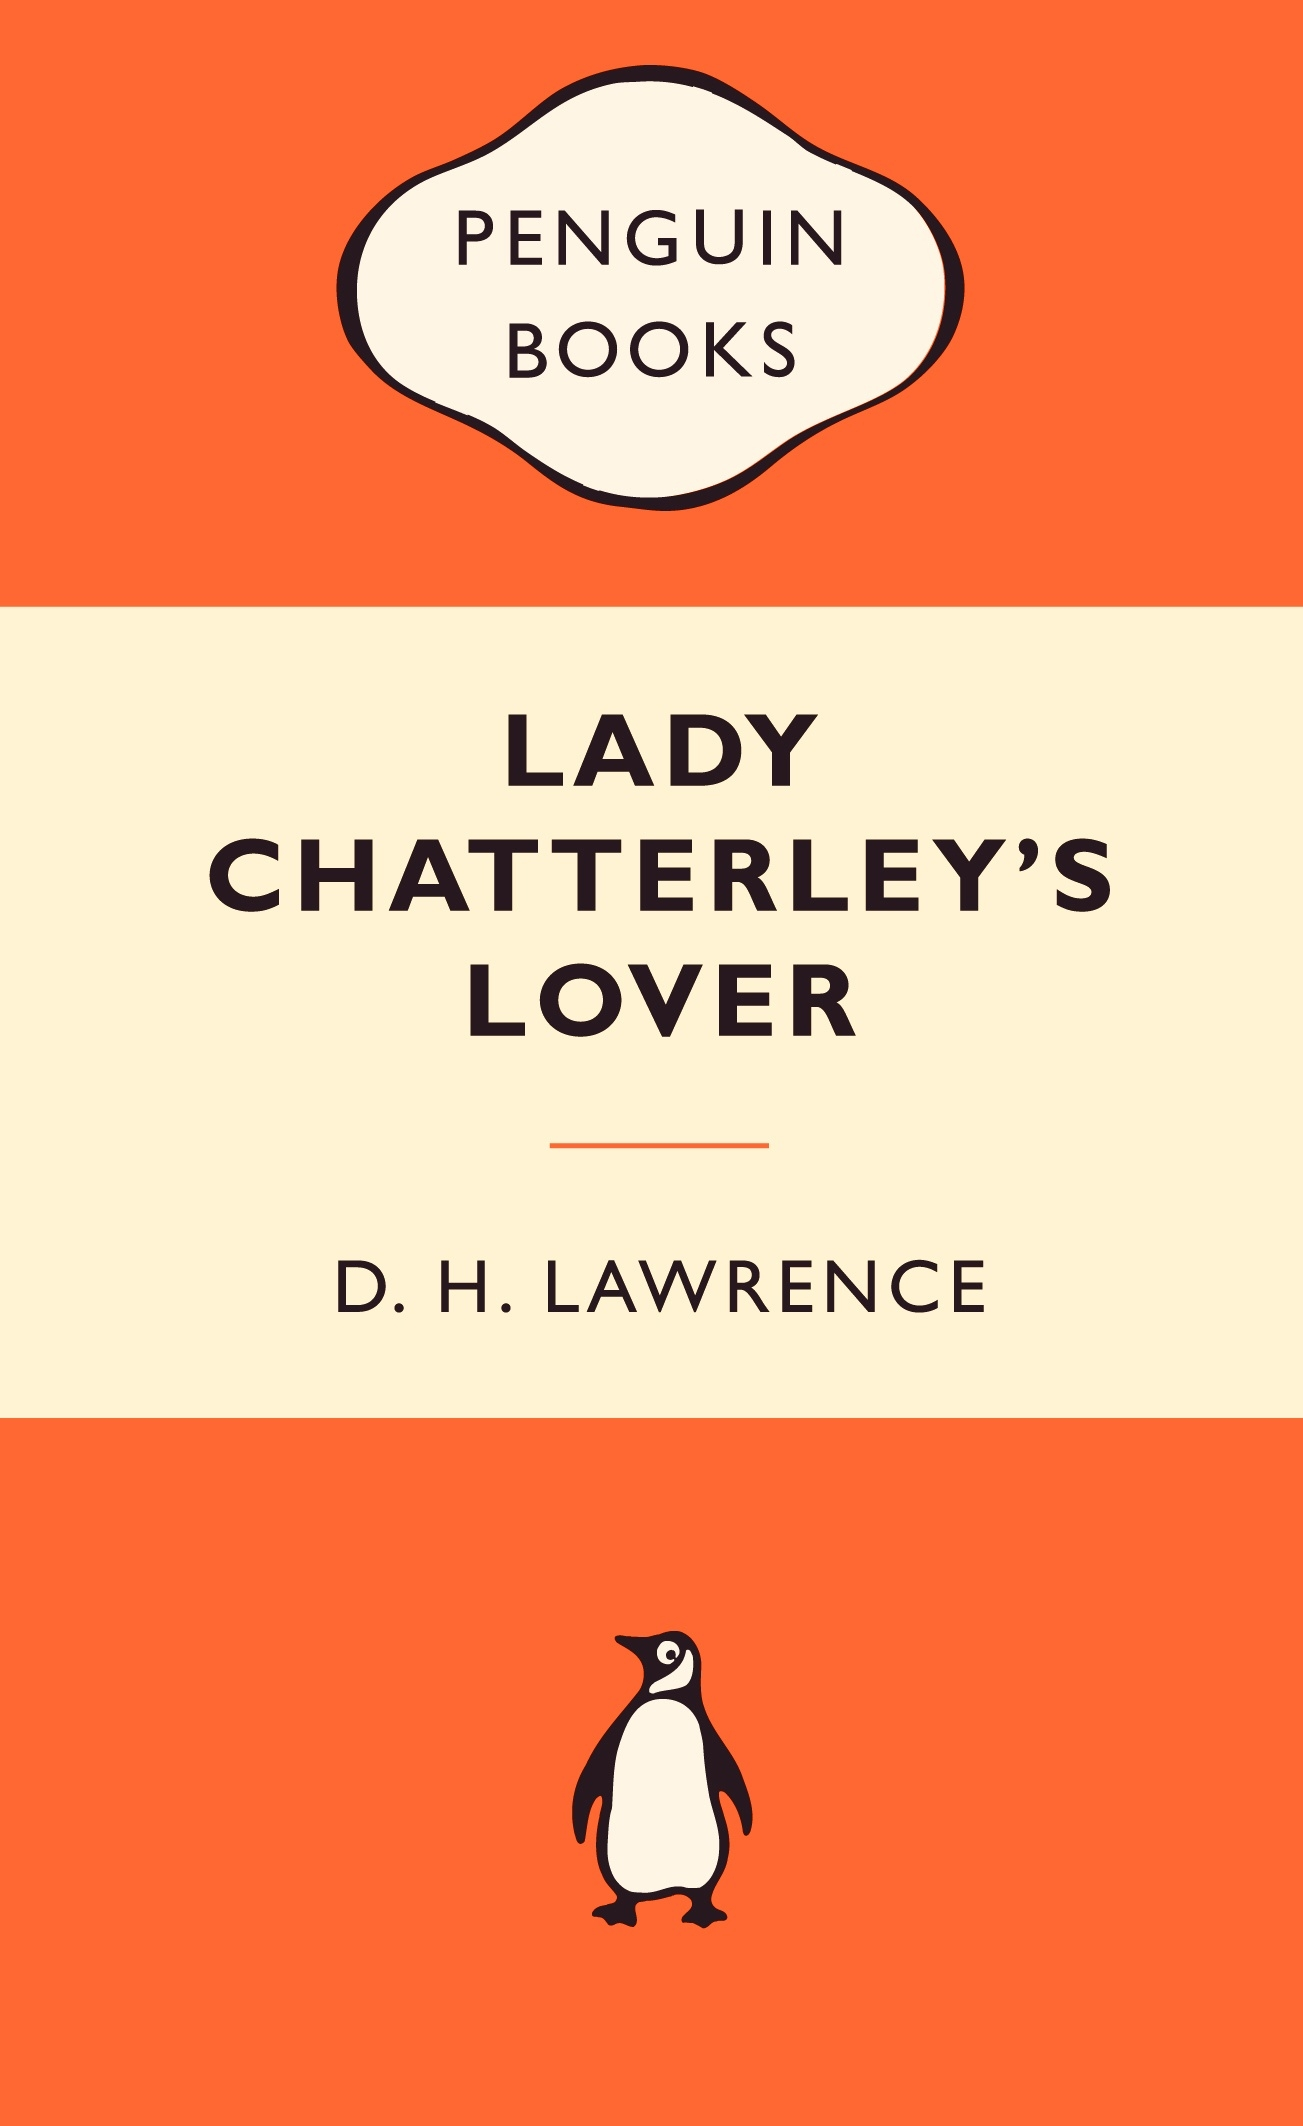 lady chatterleys lover audiobook Watch lady chatterley's lover (1981) full movie with english subtitle watch online lady chatterley's lover (1981) 1981, sylvia kristel, shane briant, nicholas clay.